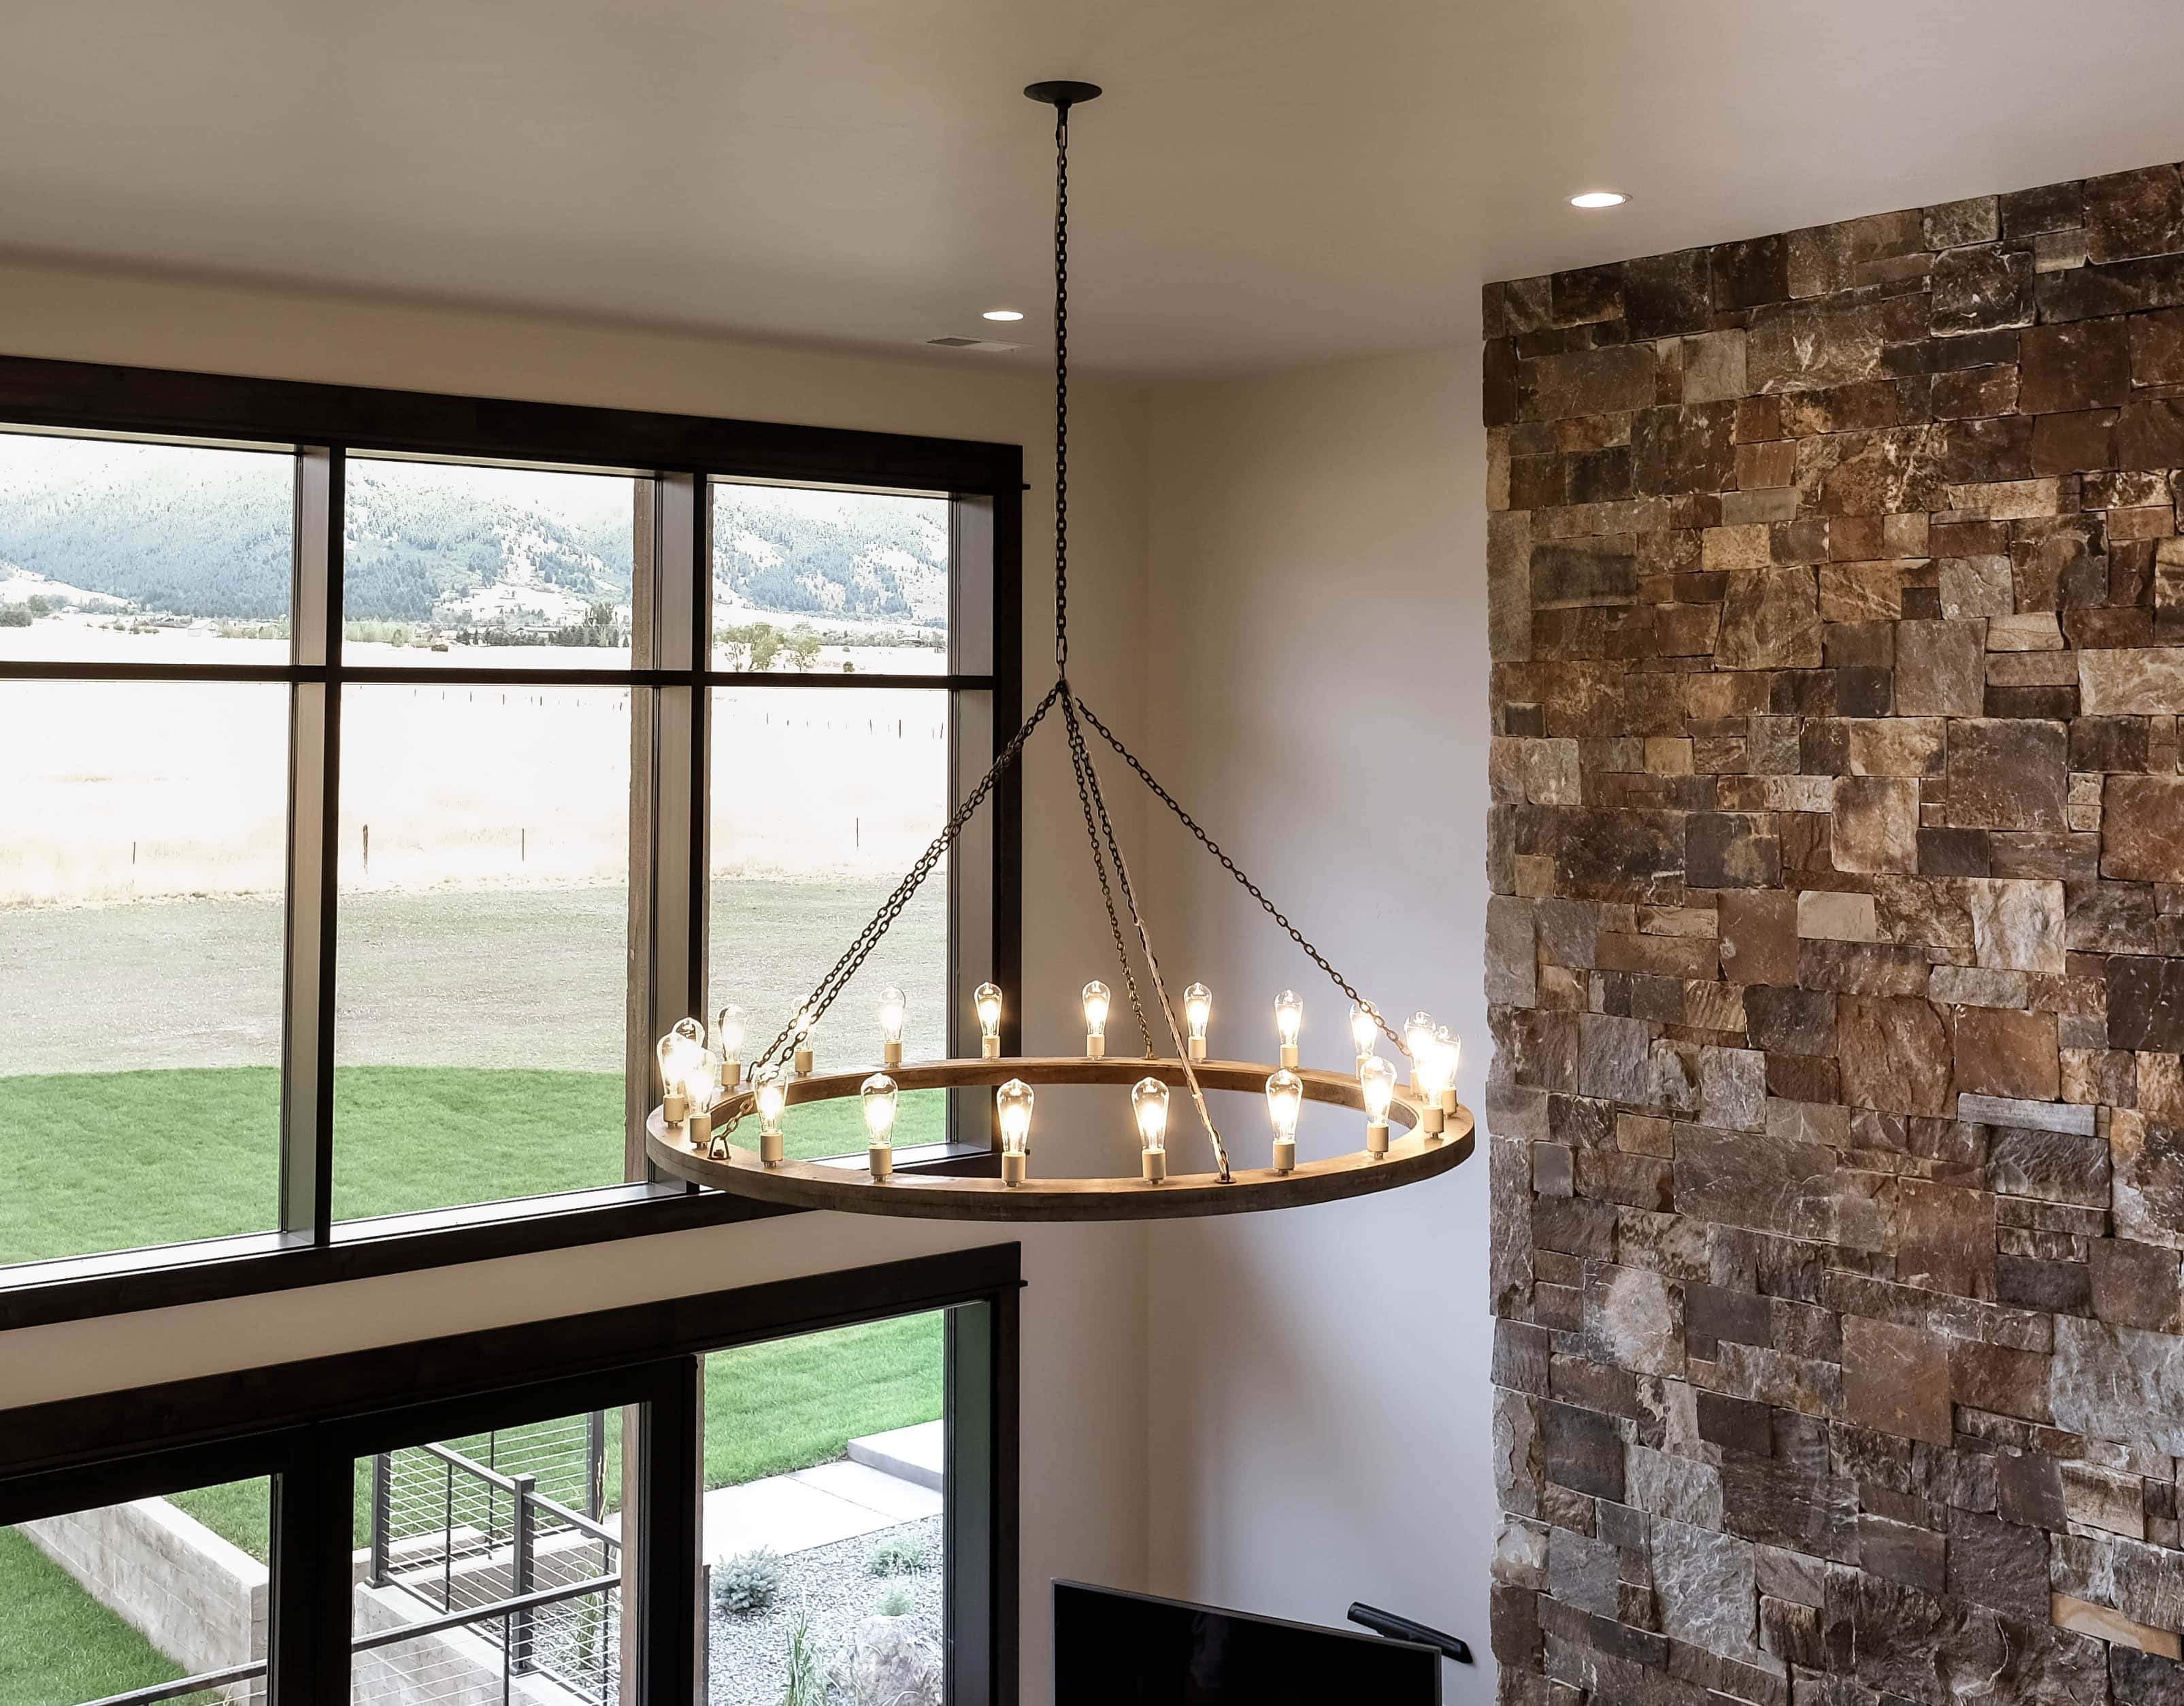 Parade of Homes great room chandelier with 20 edison style bulbs